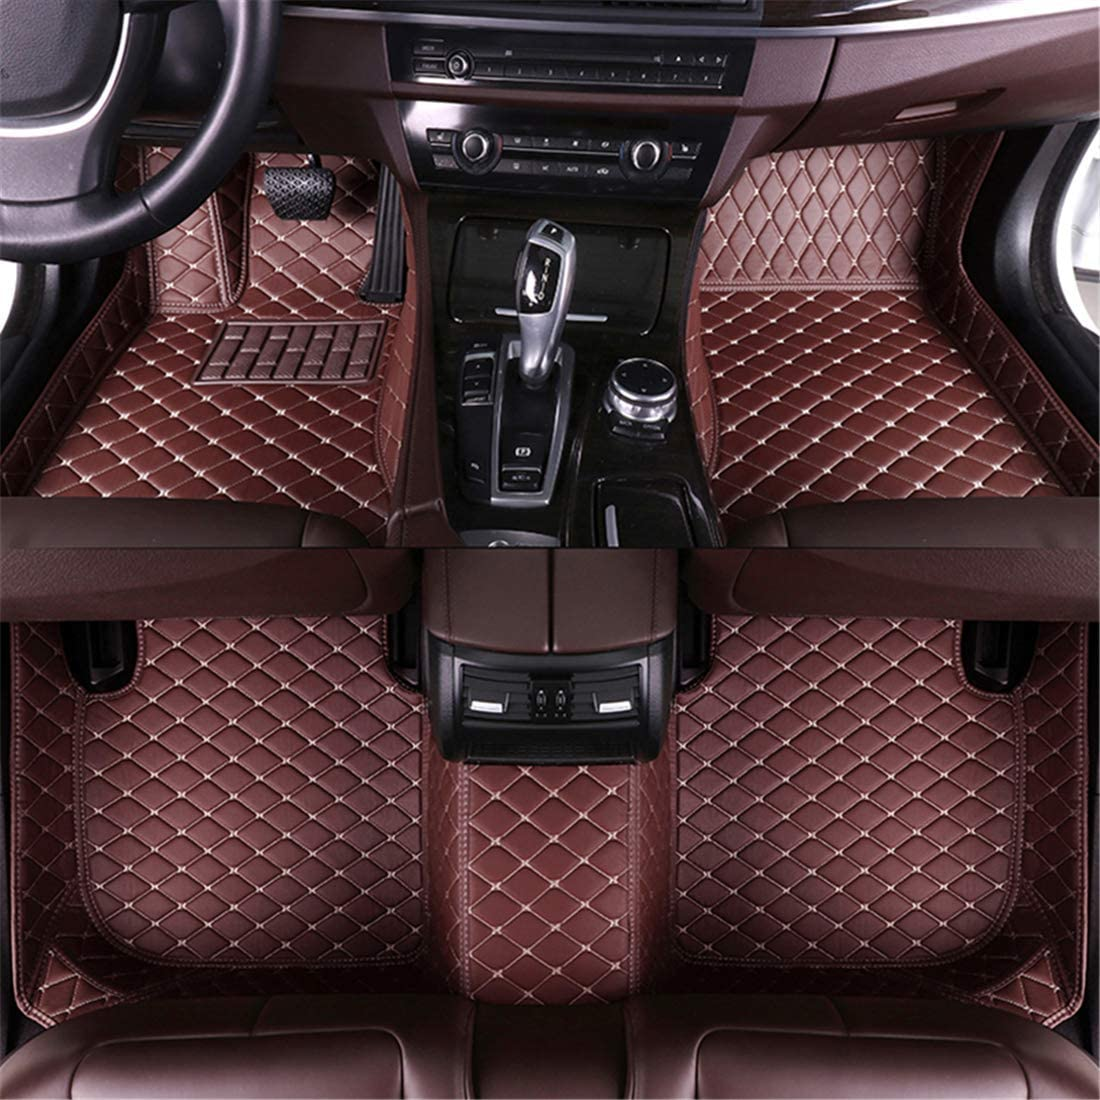 Muchkey car Floor Mats fit for Toyota Previa 2010 Full Coverage All Weather Protection Non-Slip Leather Floor Liners Coffee